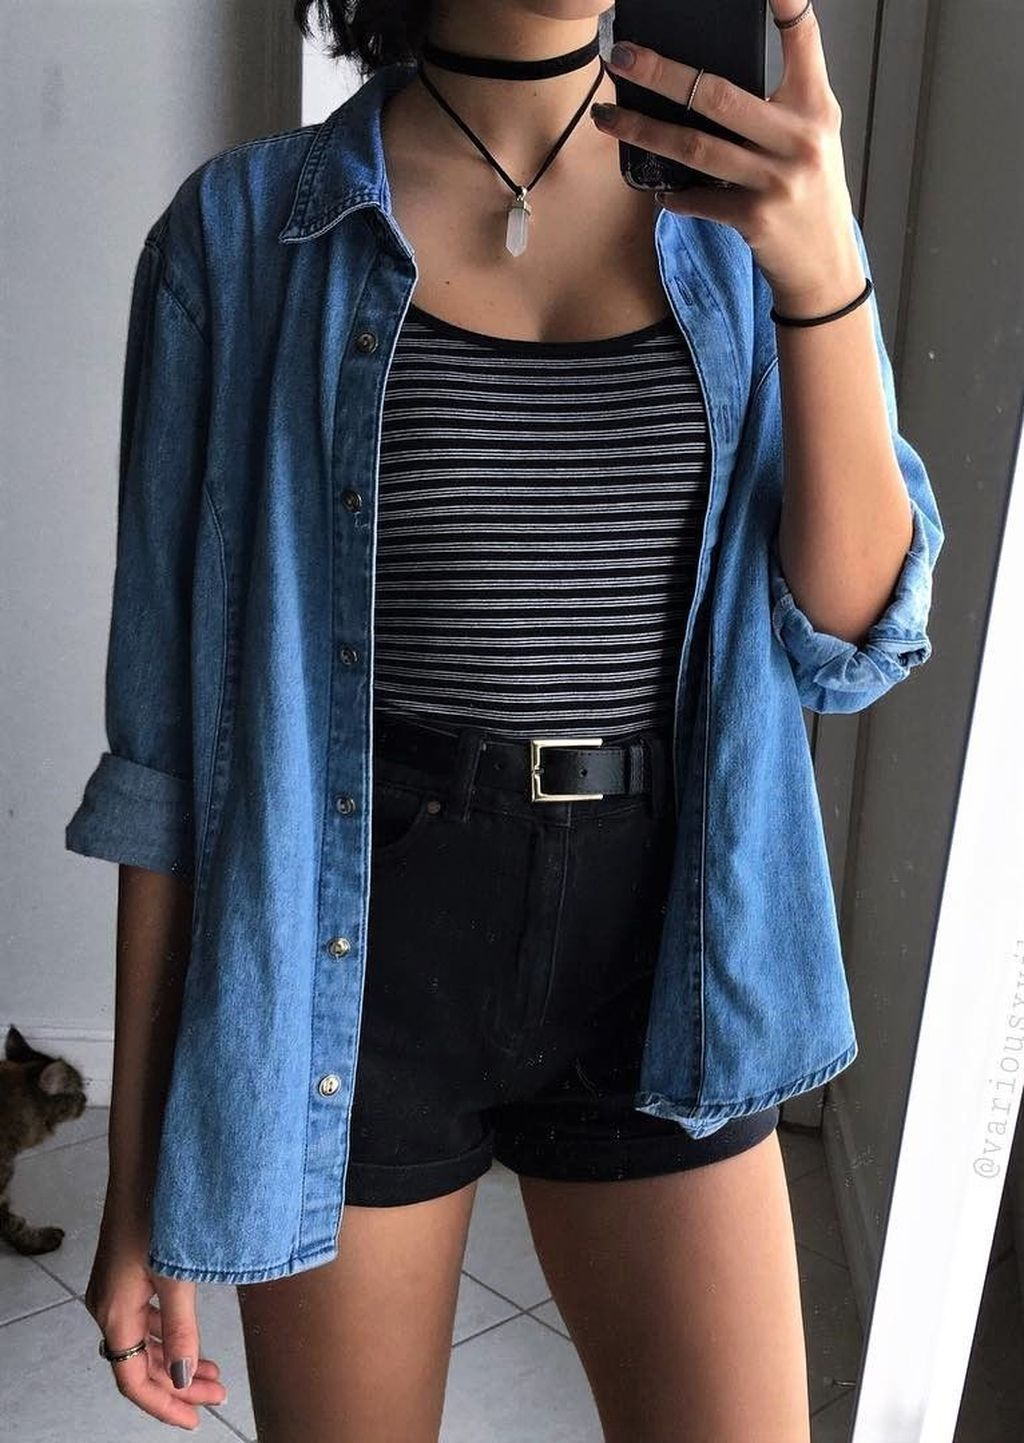 Hipster Frauen Mode Pin Von Freya Auf Beauty And Fashion Sommershorts Outfits